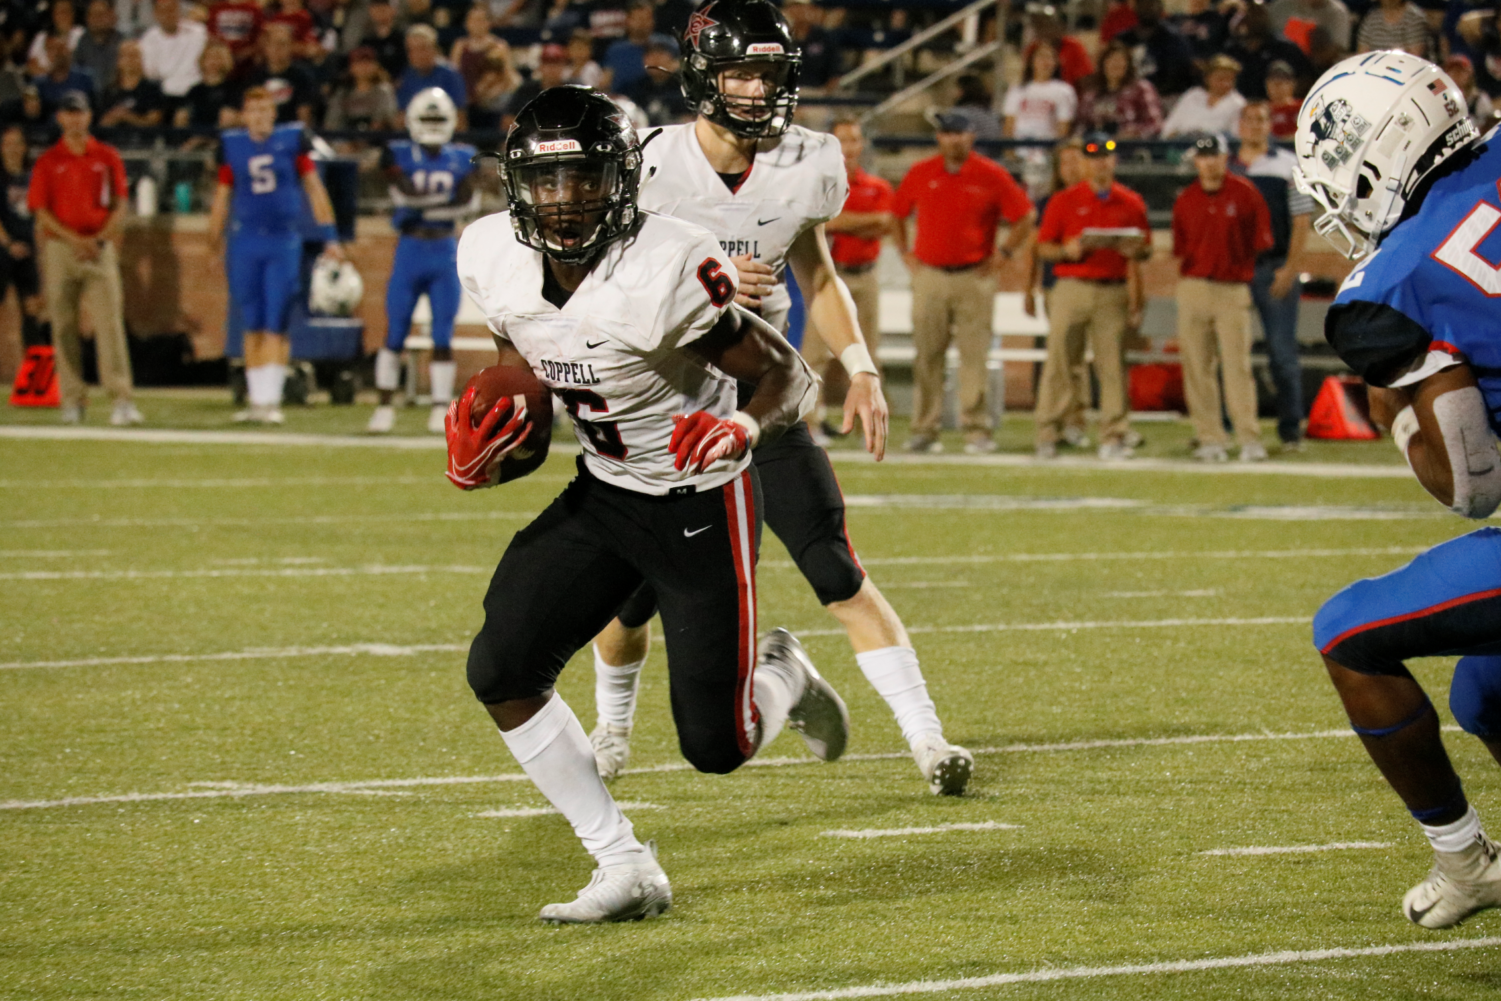 Coppell senior running back Cam Williams rushes against Allen at Eagles Stadium on Sept. 13. The Cowboys travel to Joy and Ralph Ellis Stadium to face MacArthur in their first District 6-6A game tonight at 7 p.m.